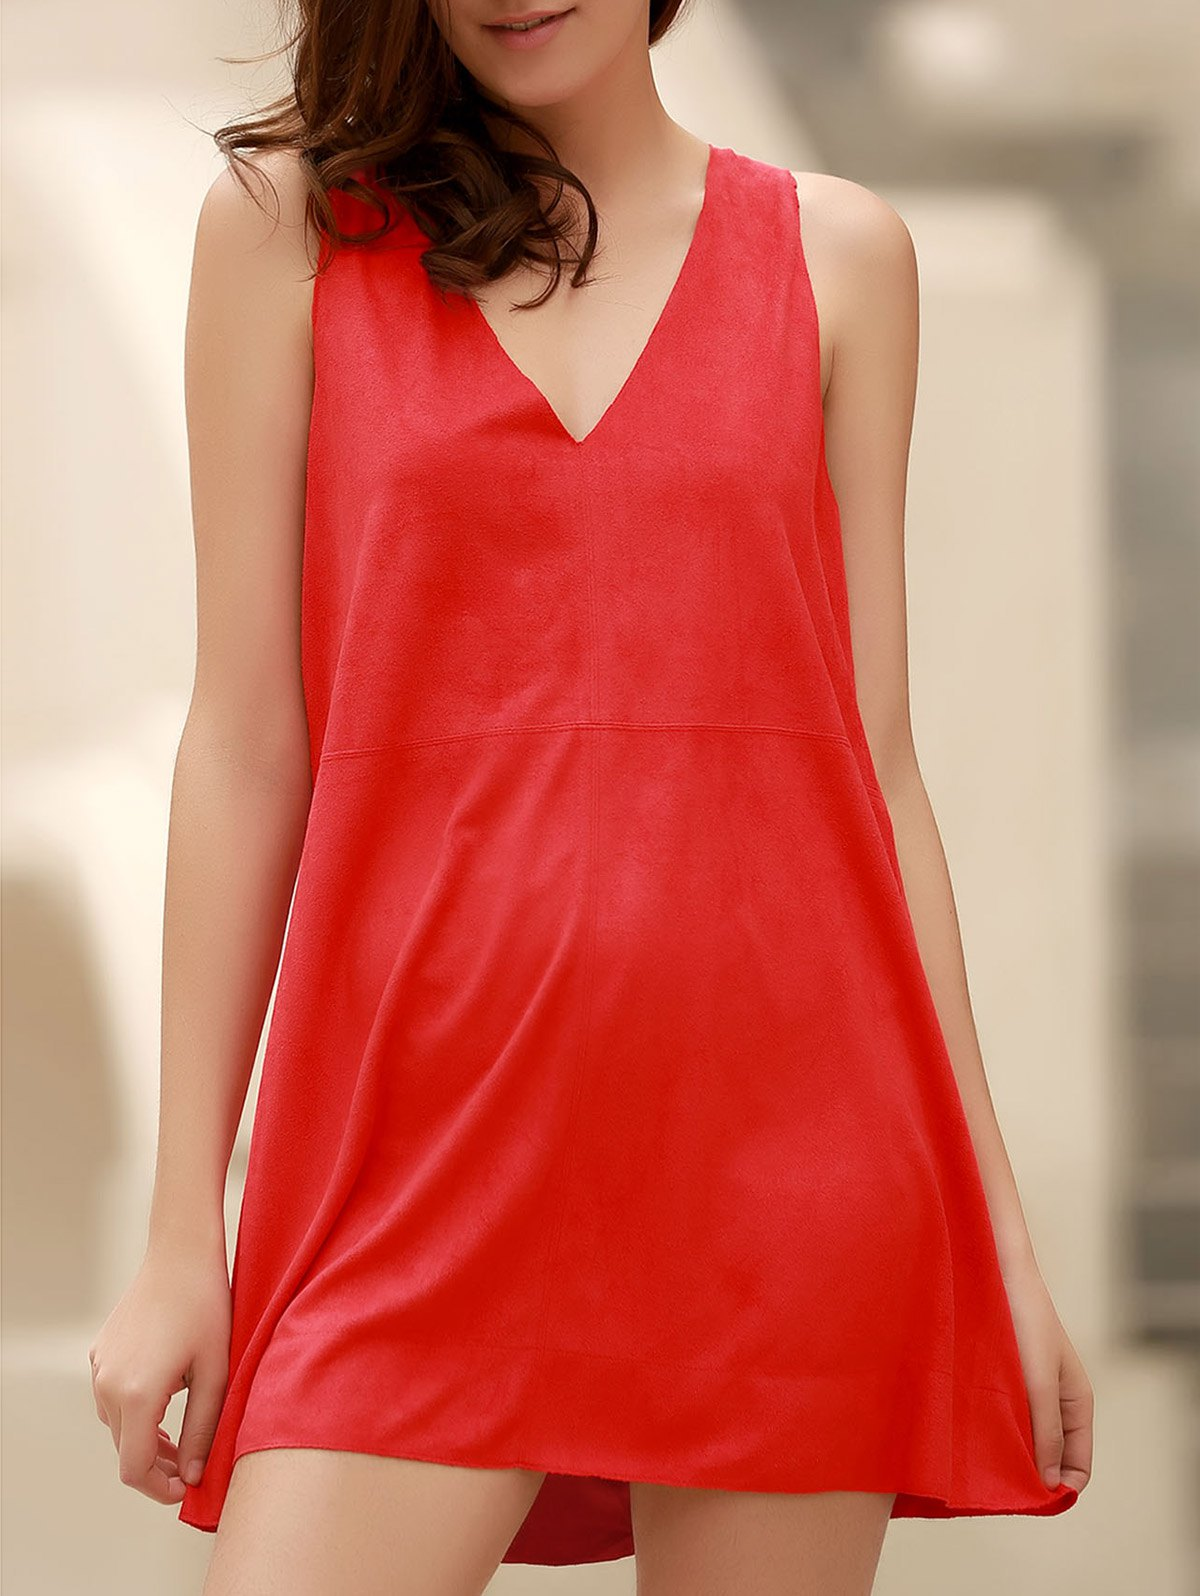 Red Faux Suede Plunging Neck Sleeveless Dress 171792902